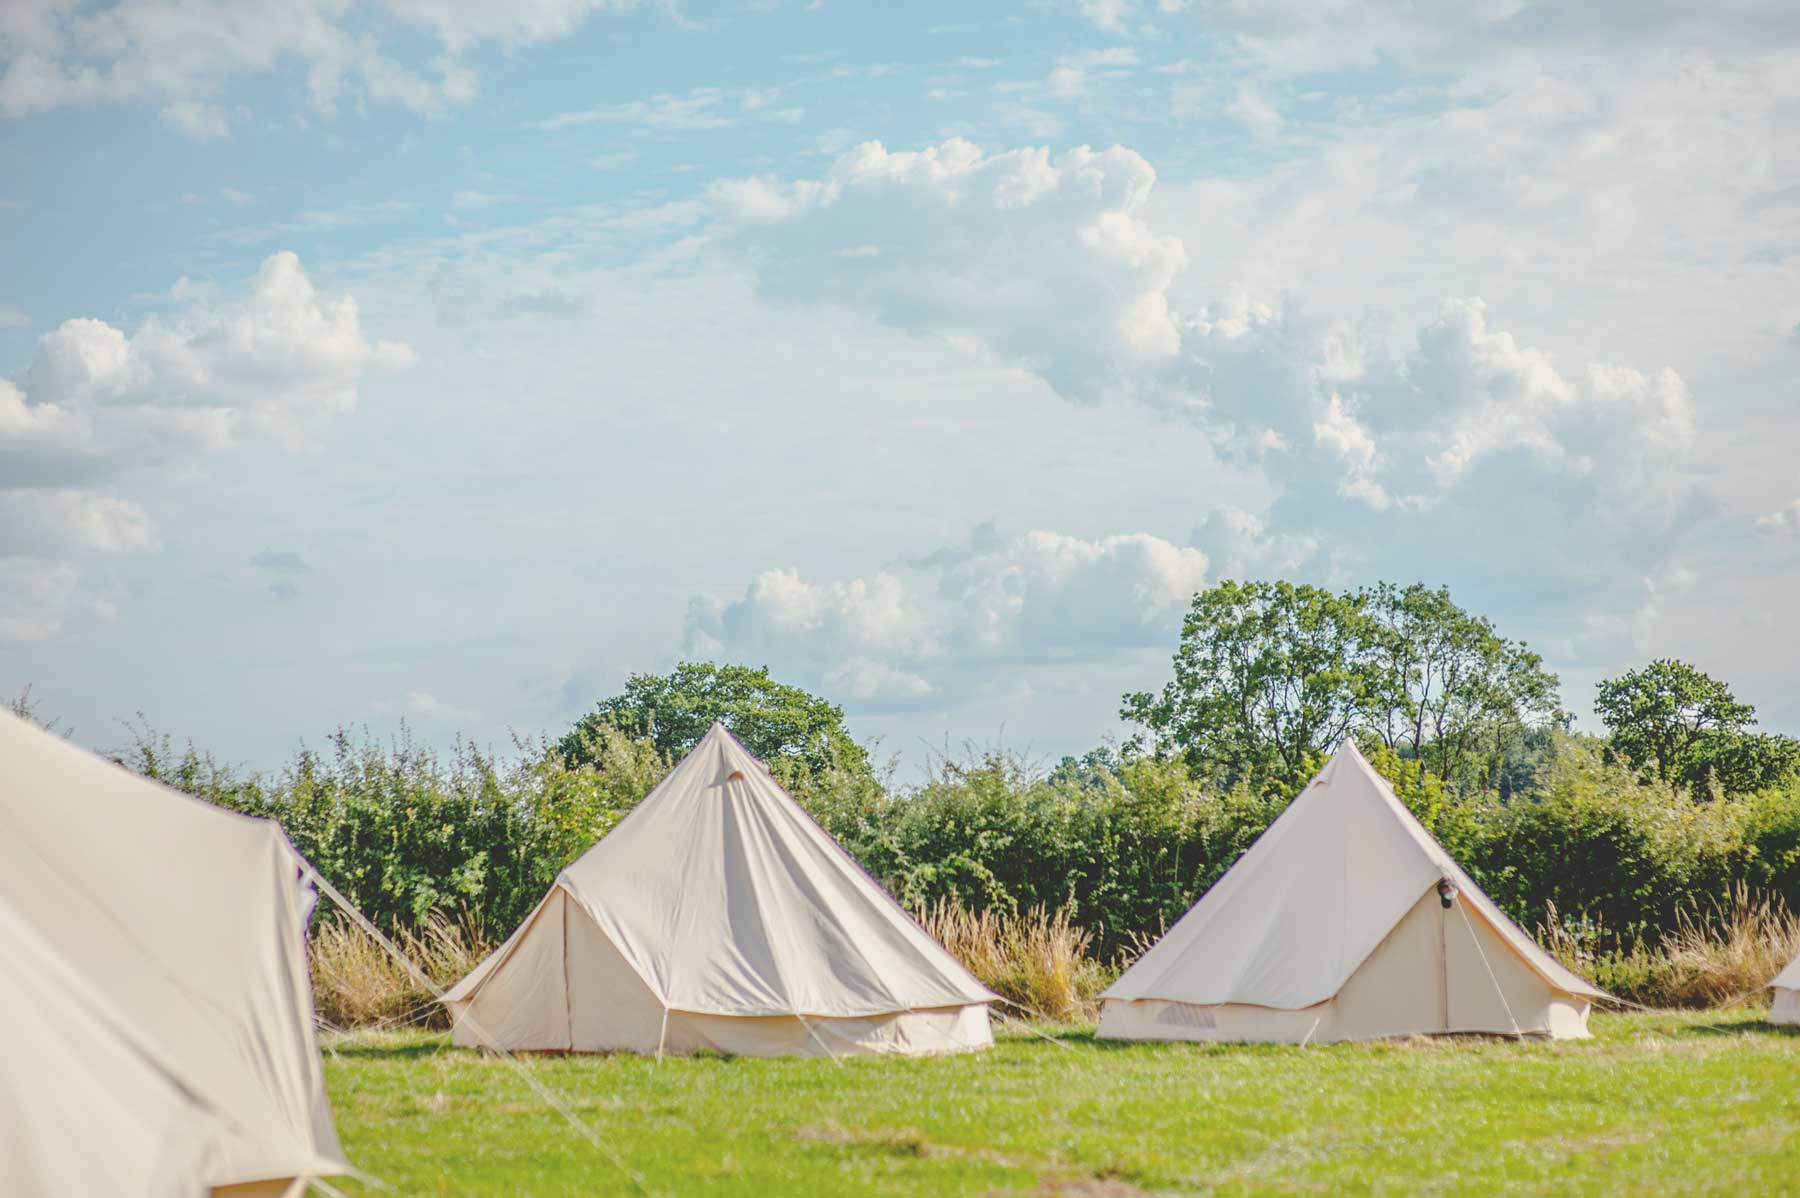 camping-at-the-festival-of-beer-near-silverstone.jpg